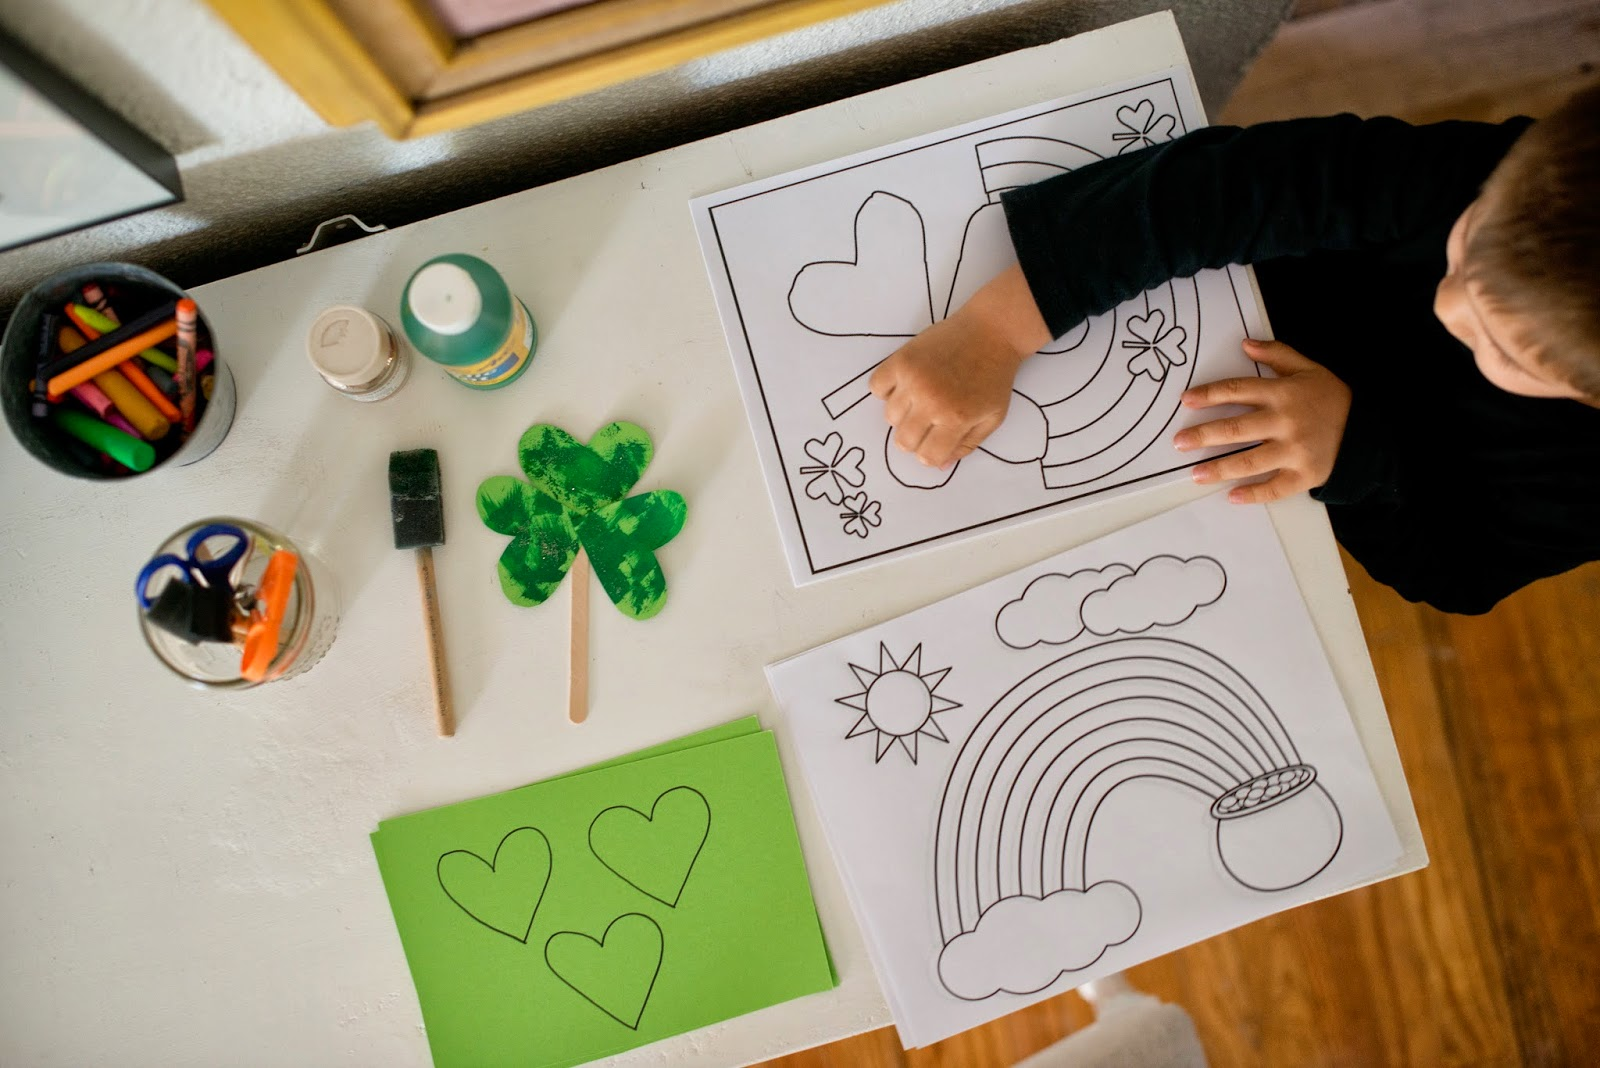 Saint Patrick's Day Kid Party Ideas